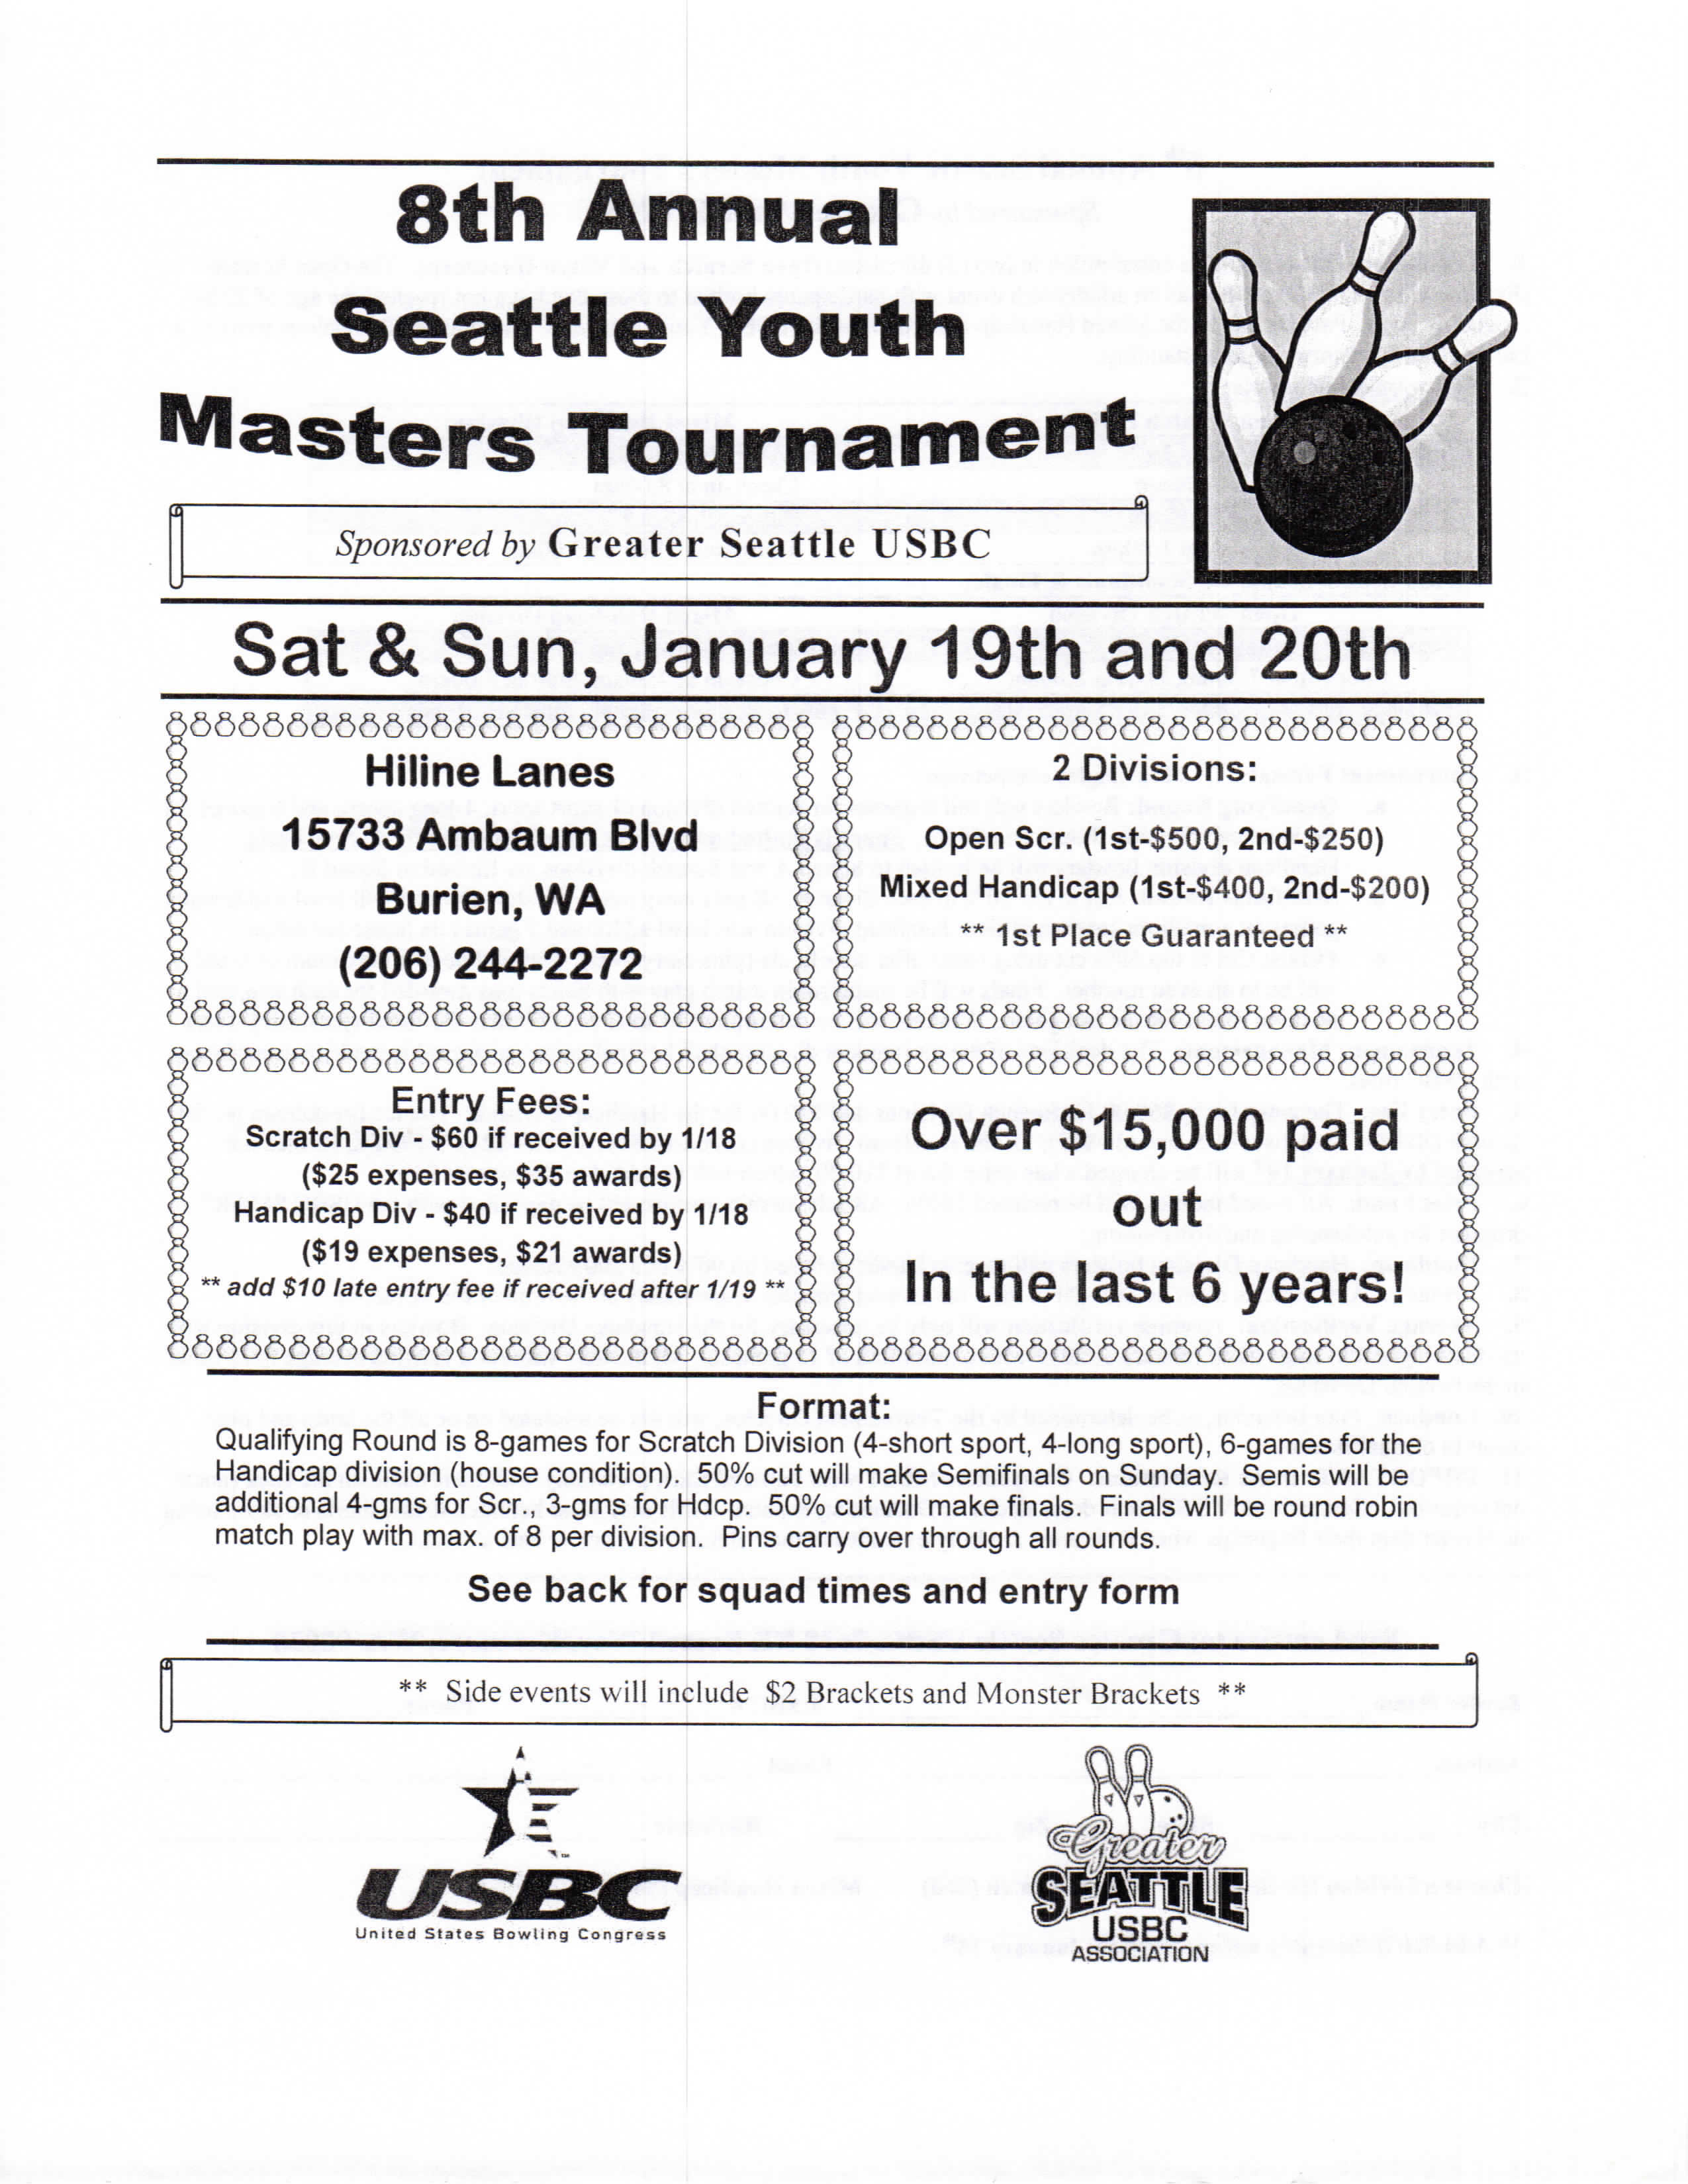 Seattle Youth Masters Tournament